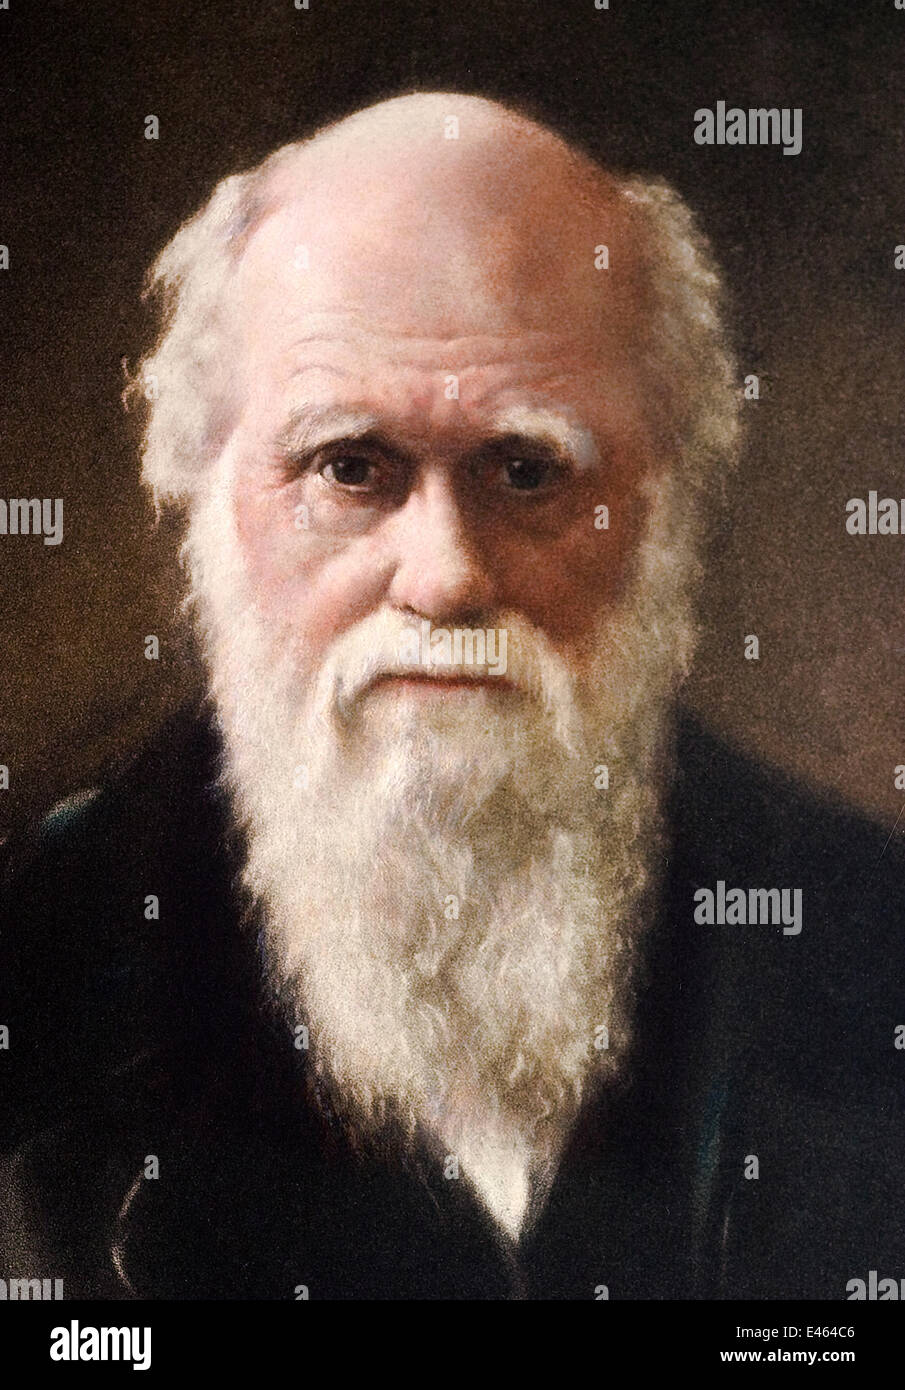 1881 portrait of Charles Robert Darwin (12 February 1809 - 19 April 1882)  English Naturalist and author of the Origin of Species. d7266093d02